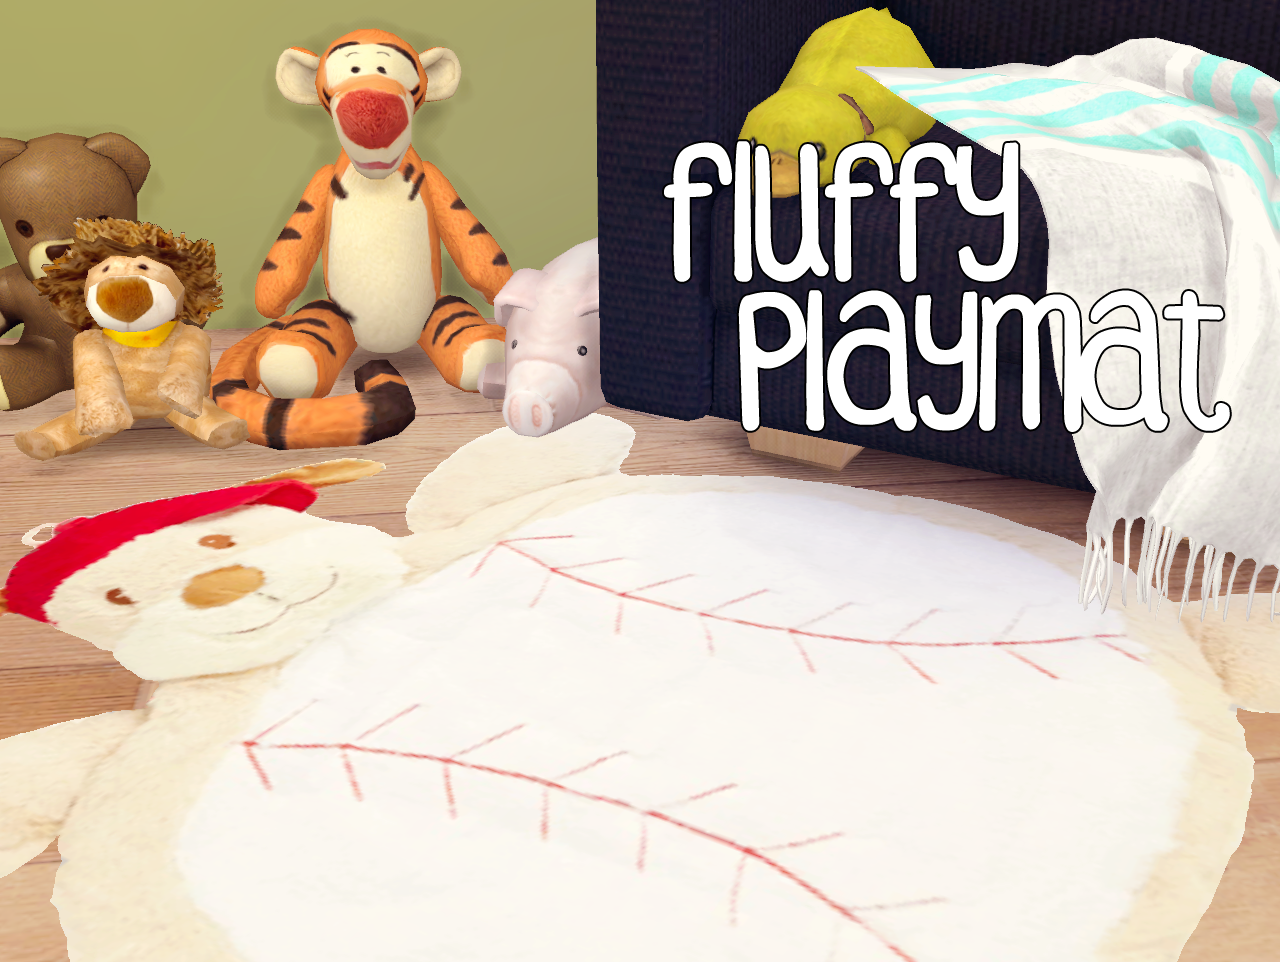 Fluffy Play Mats by AkaiSims